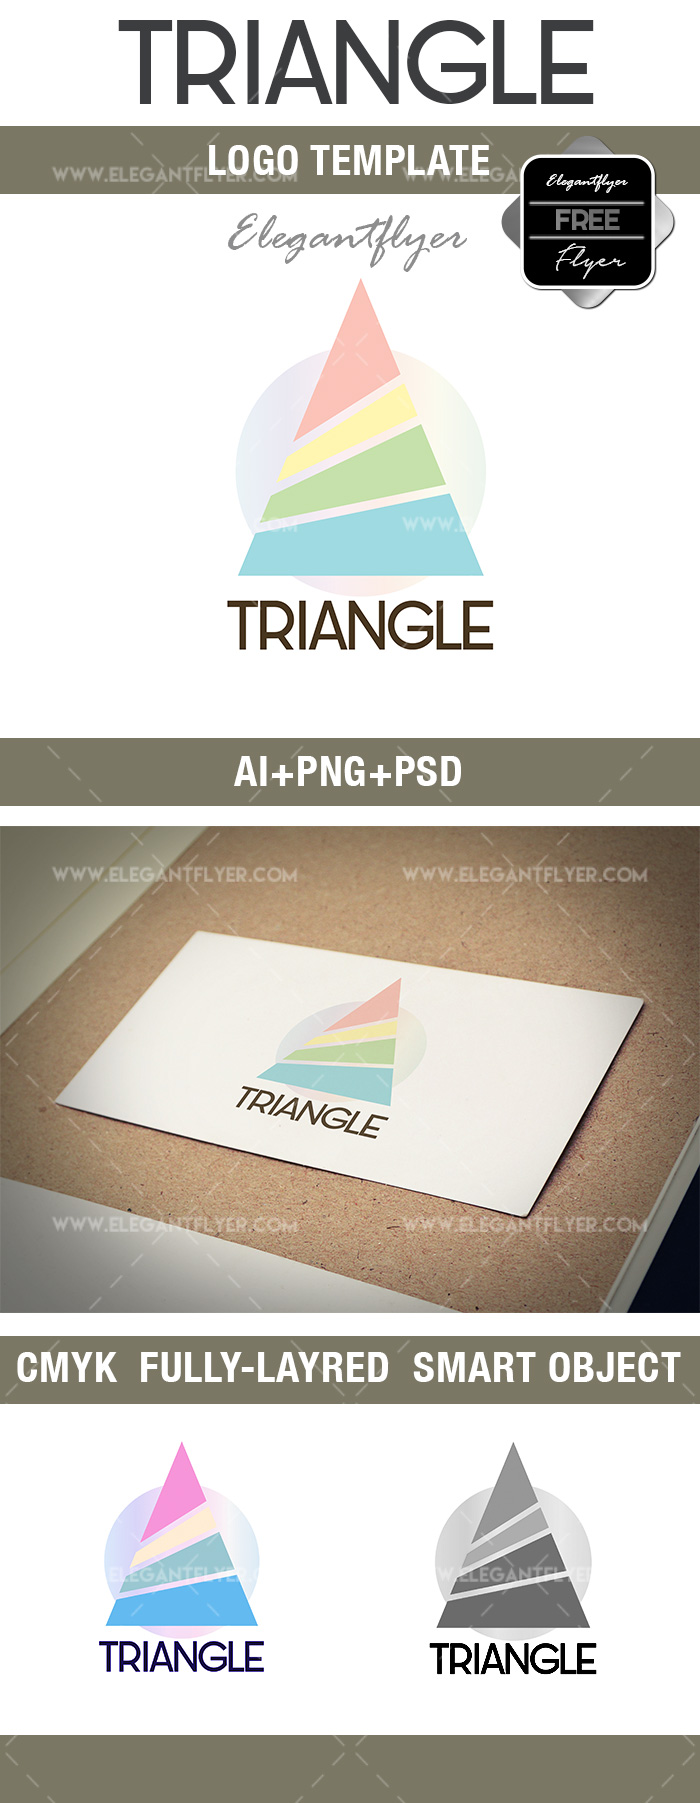 Triangle – Free Logo Template